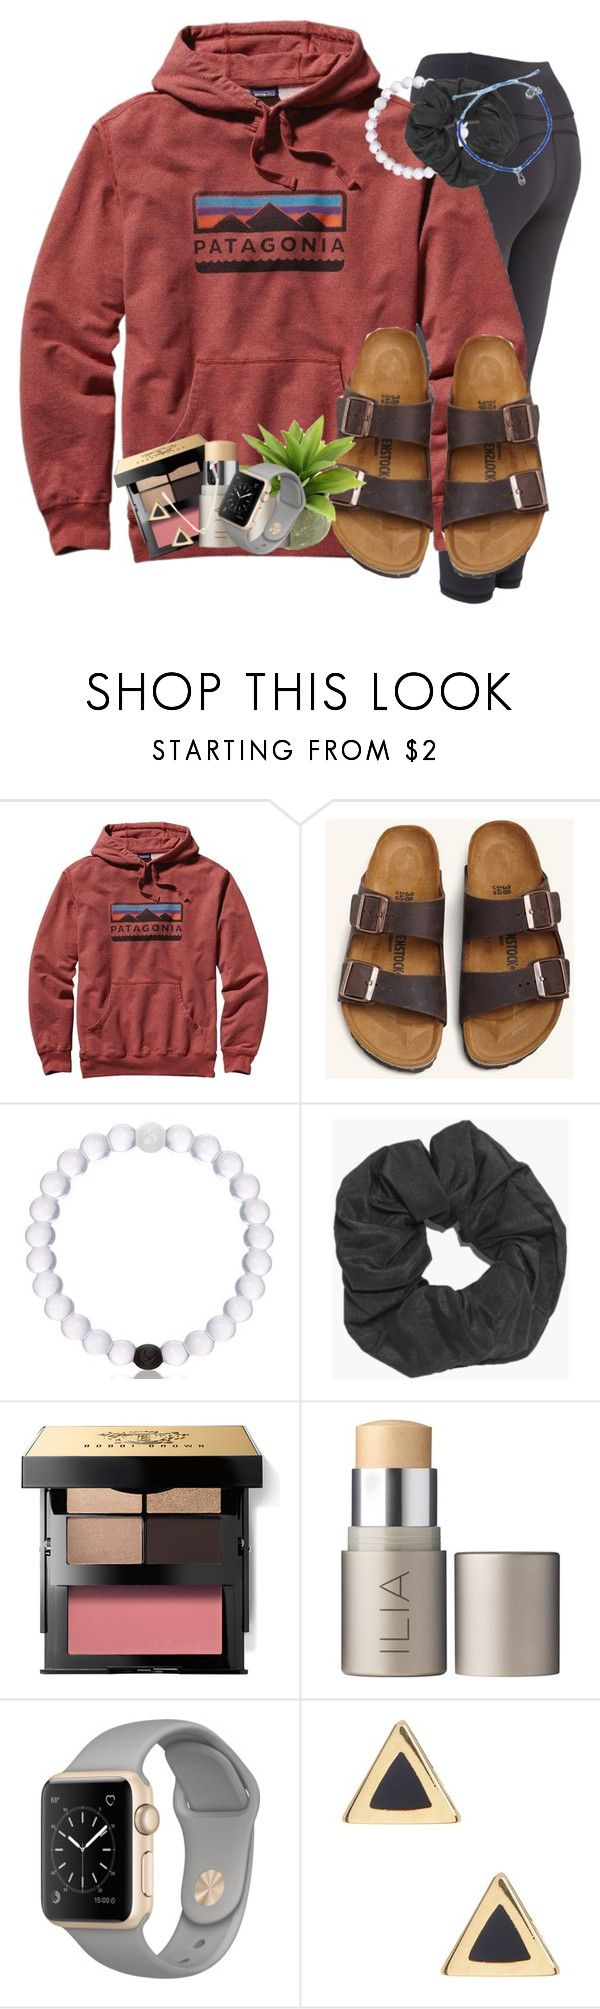 """☀️️"" by livnewell ❤ liked on Polyvore featuring Patagonia, Birkenstock, Boohoo, Bobbi Brown Cosmetics, Ilia and Ariella Collection"